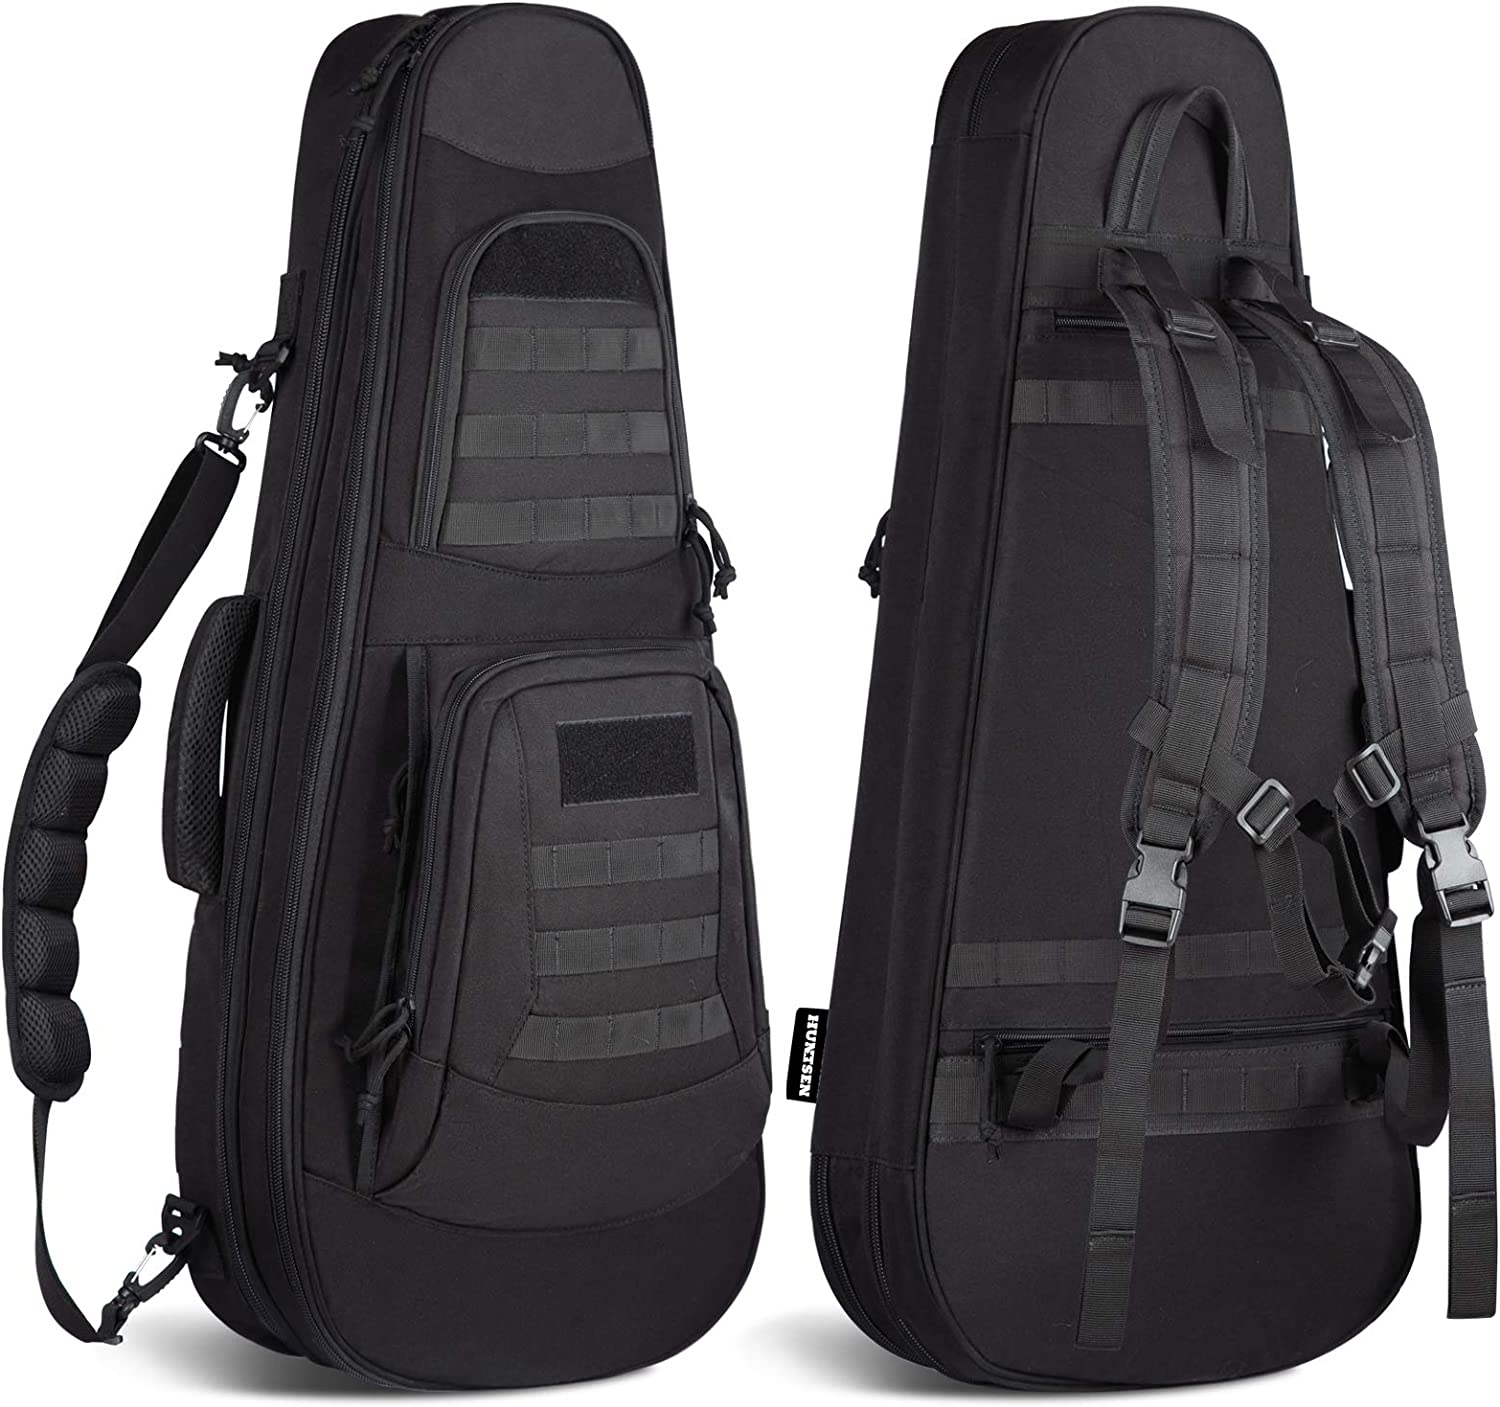 HUNTSEN Tactical Purchase Rifle Bag Max 52% OFF Backpack Gun Padded Case Soft